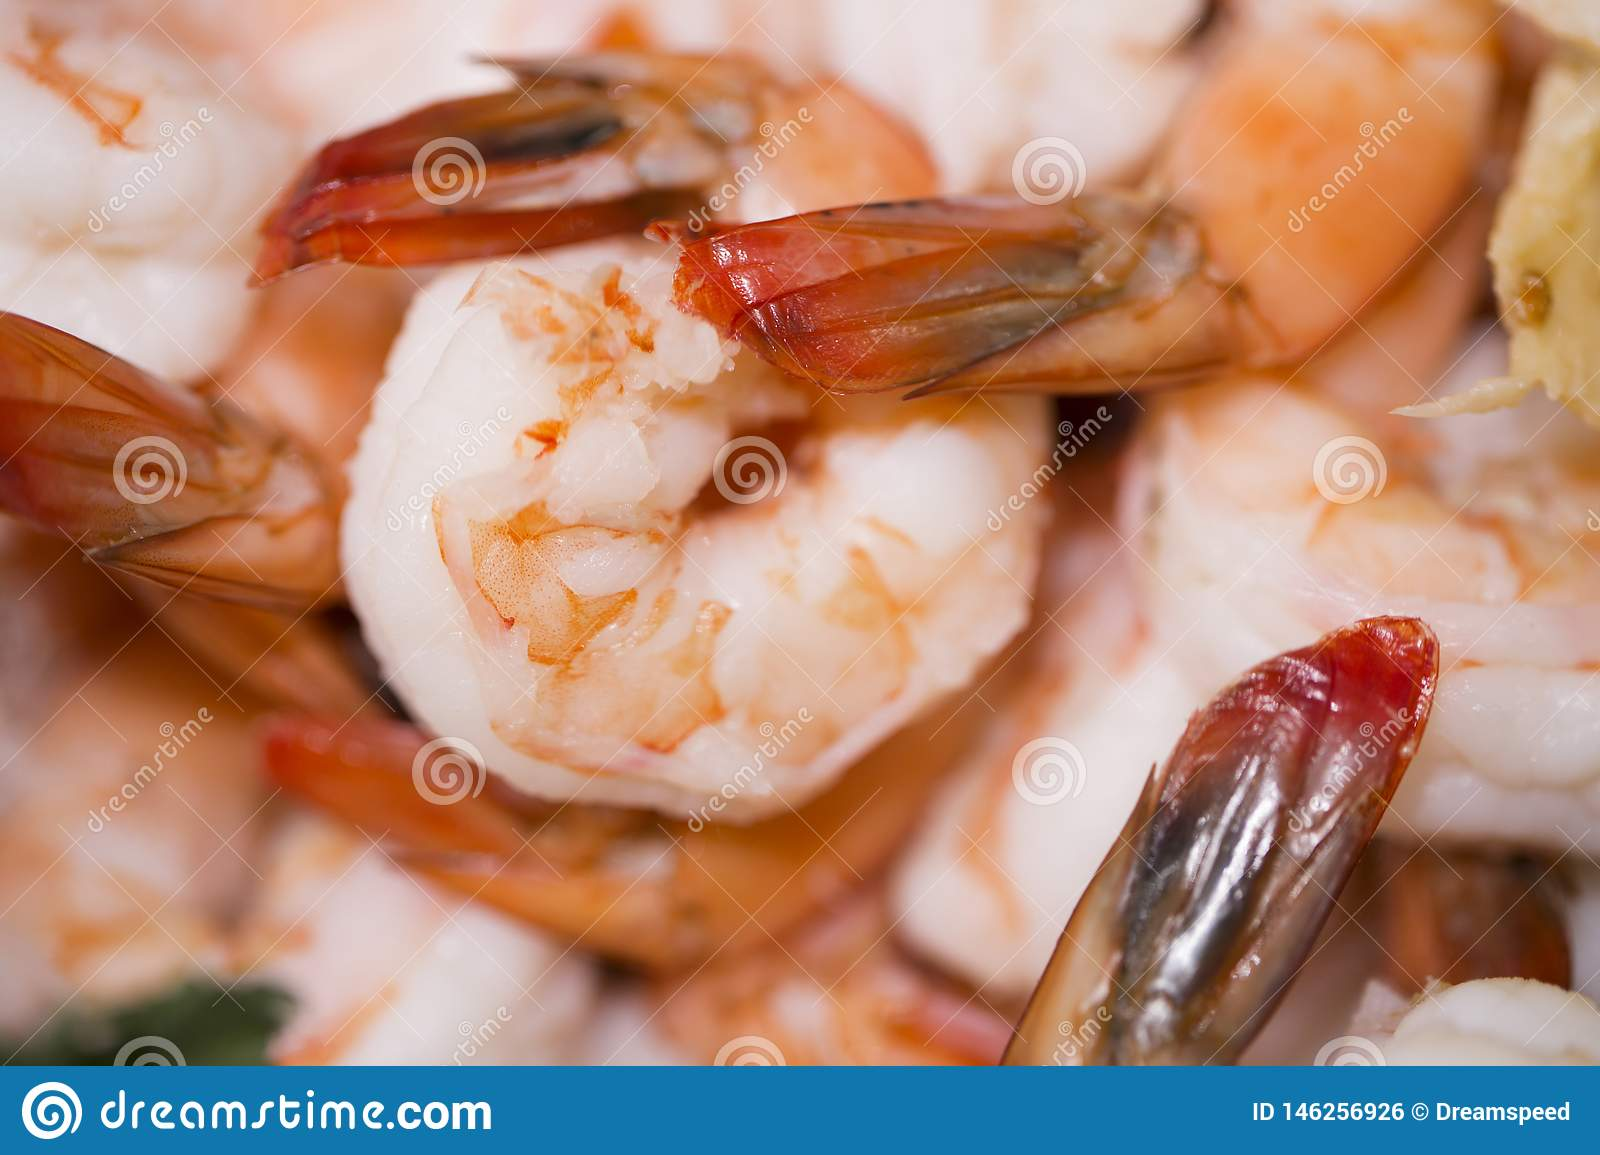 Pile of plumb, fresh cooked shrimp